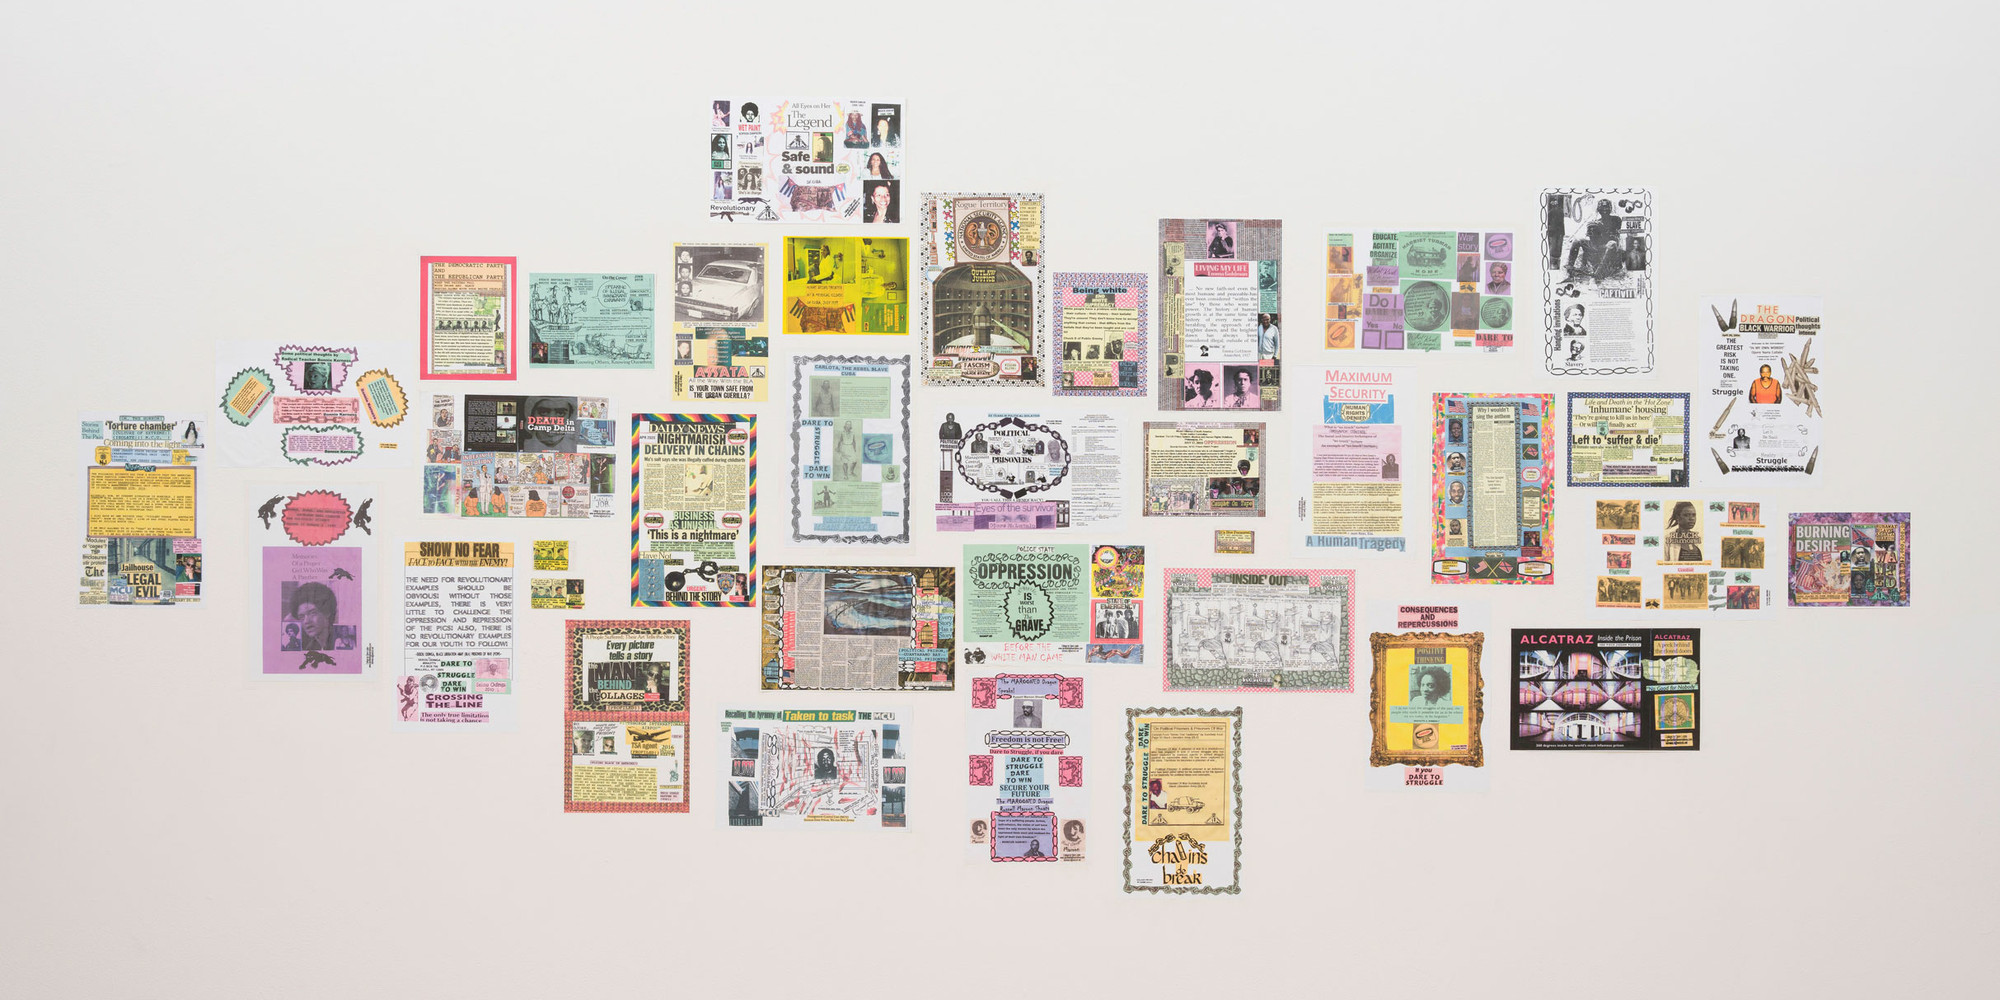 Ojore Lutalo. All works untitled. n.d. Photocopied collage posters, dimensions variable. Installation view, Marking Time: Art in the Age of Mass Incarceration, MoMA PS1, September 17, 2020–April 5, 2021. Courtesy the artist